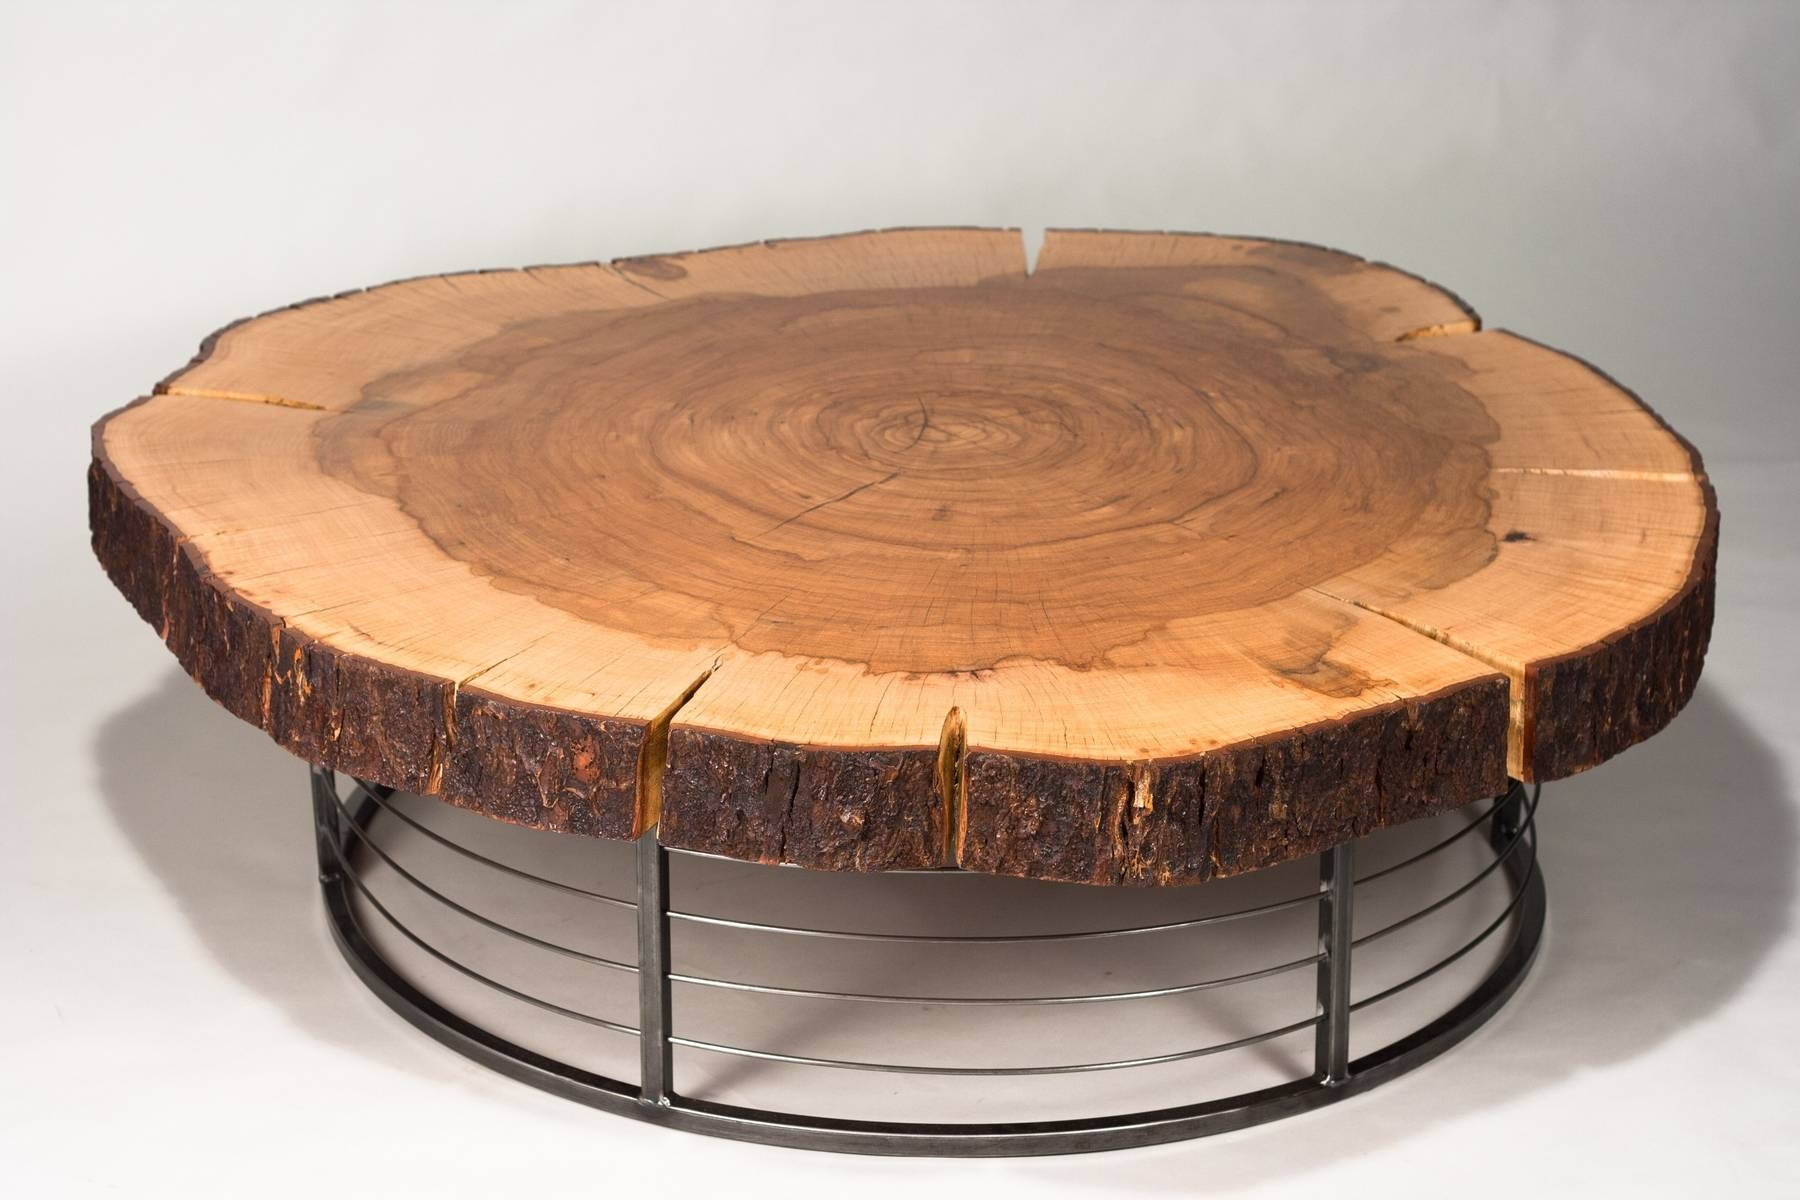 Tree Trunks Coffee Table With Top Glass : Guideline To Make A within Trunk Coffee Tables (Image 28 of 30)